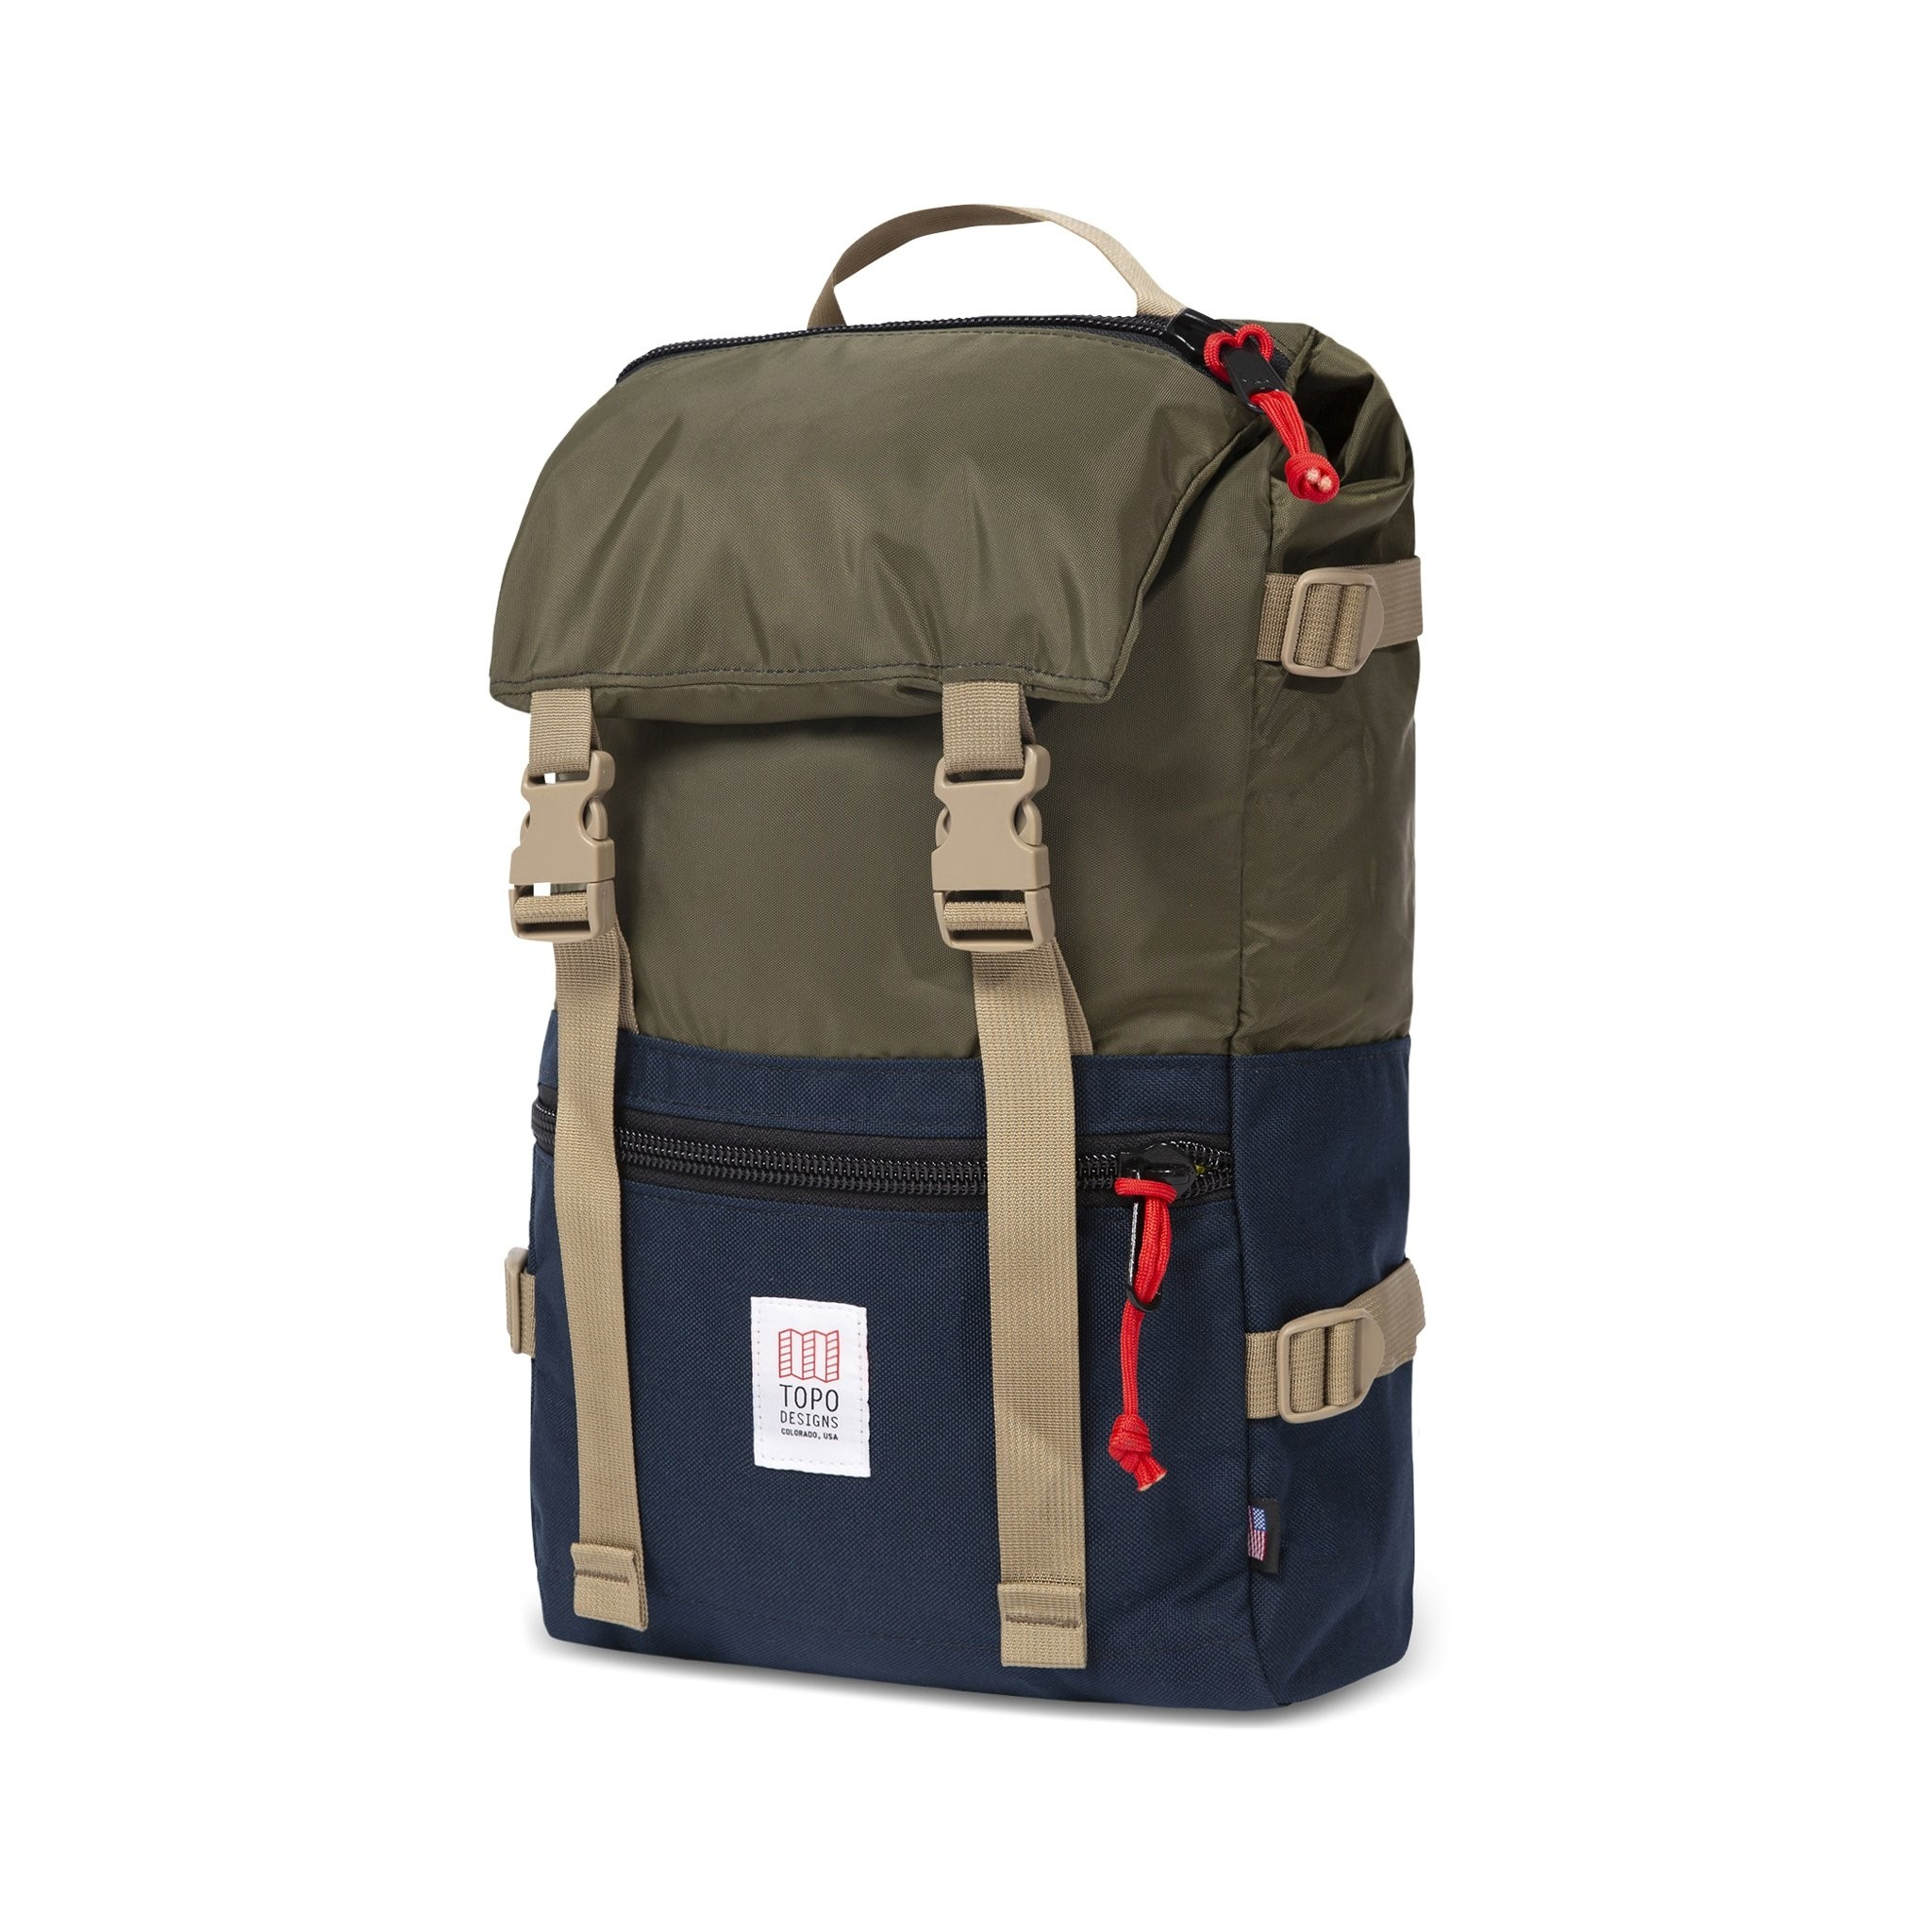 Topo Designs Rover Pack 20L : Olive / Navy